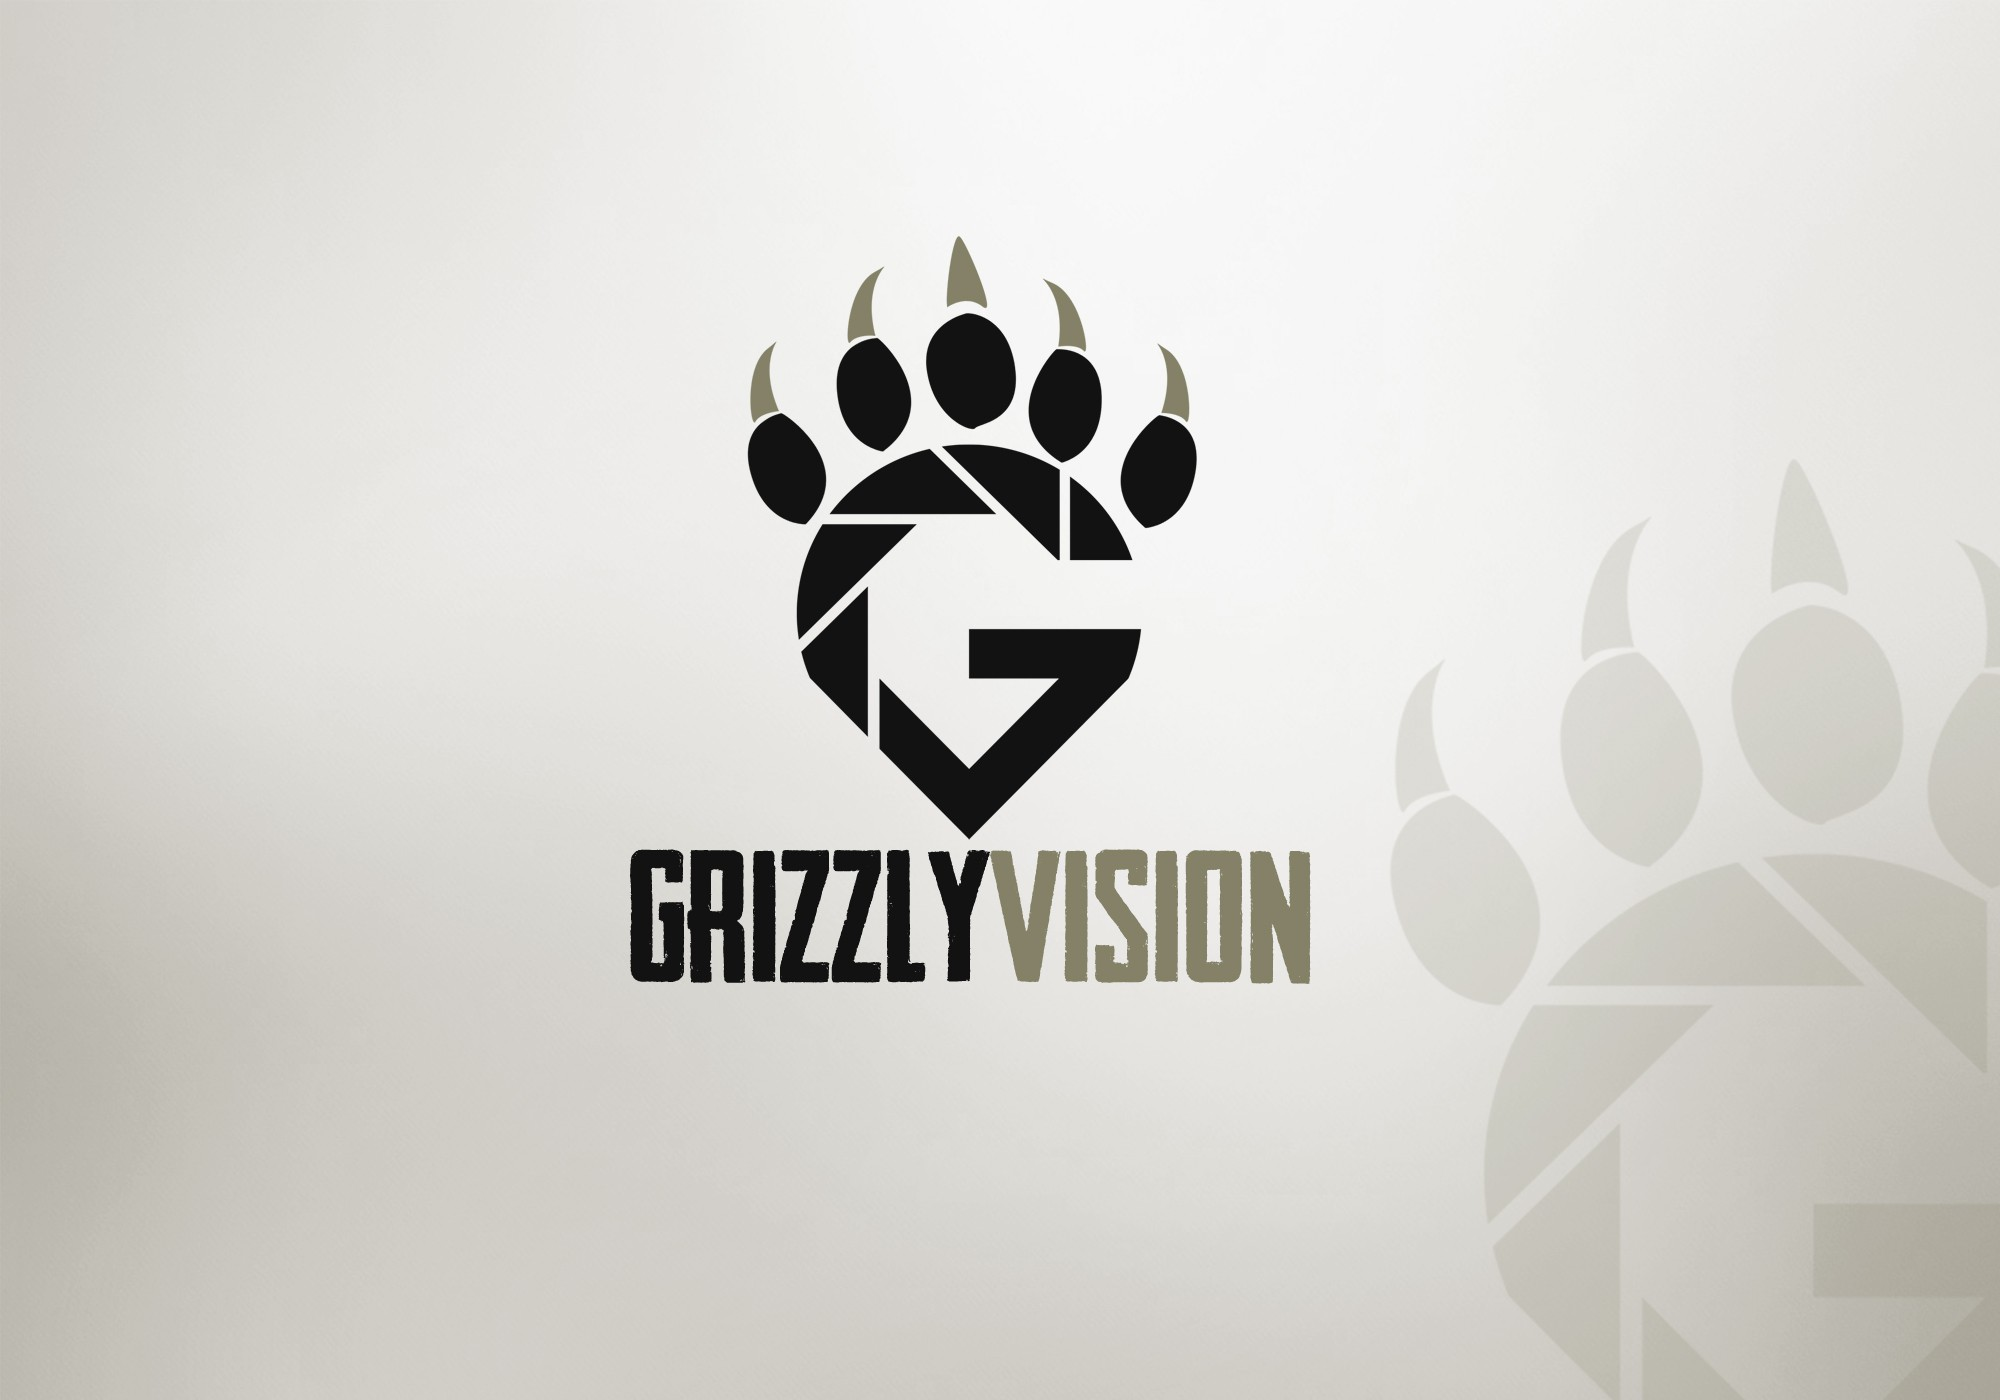 Grizzly Vision needs help with a new logo